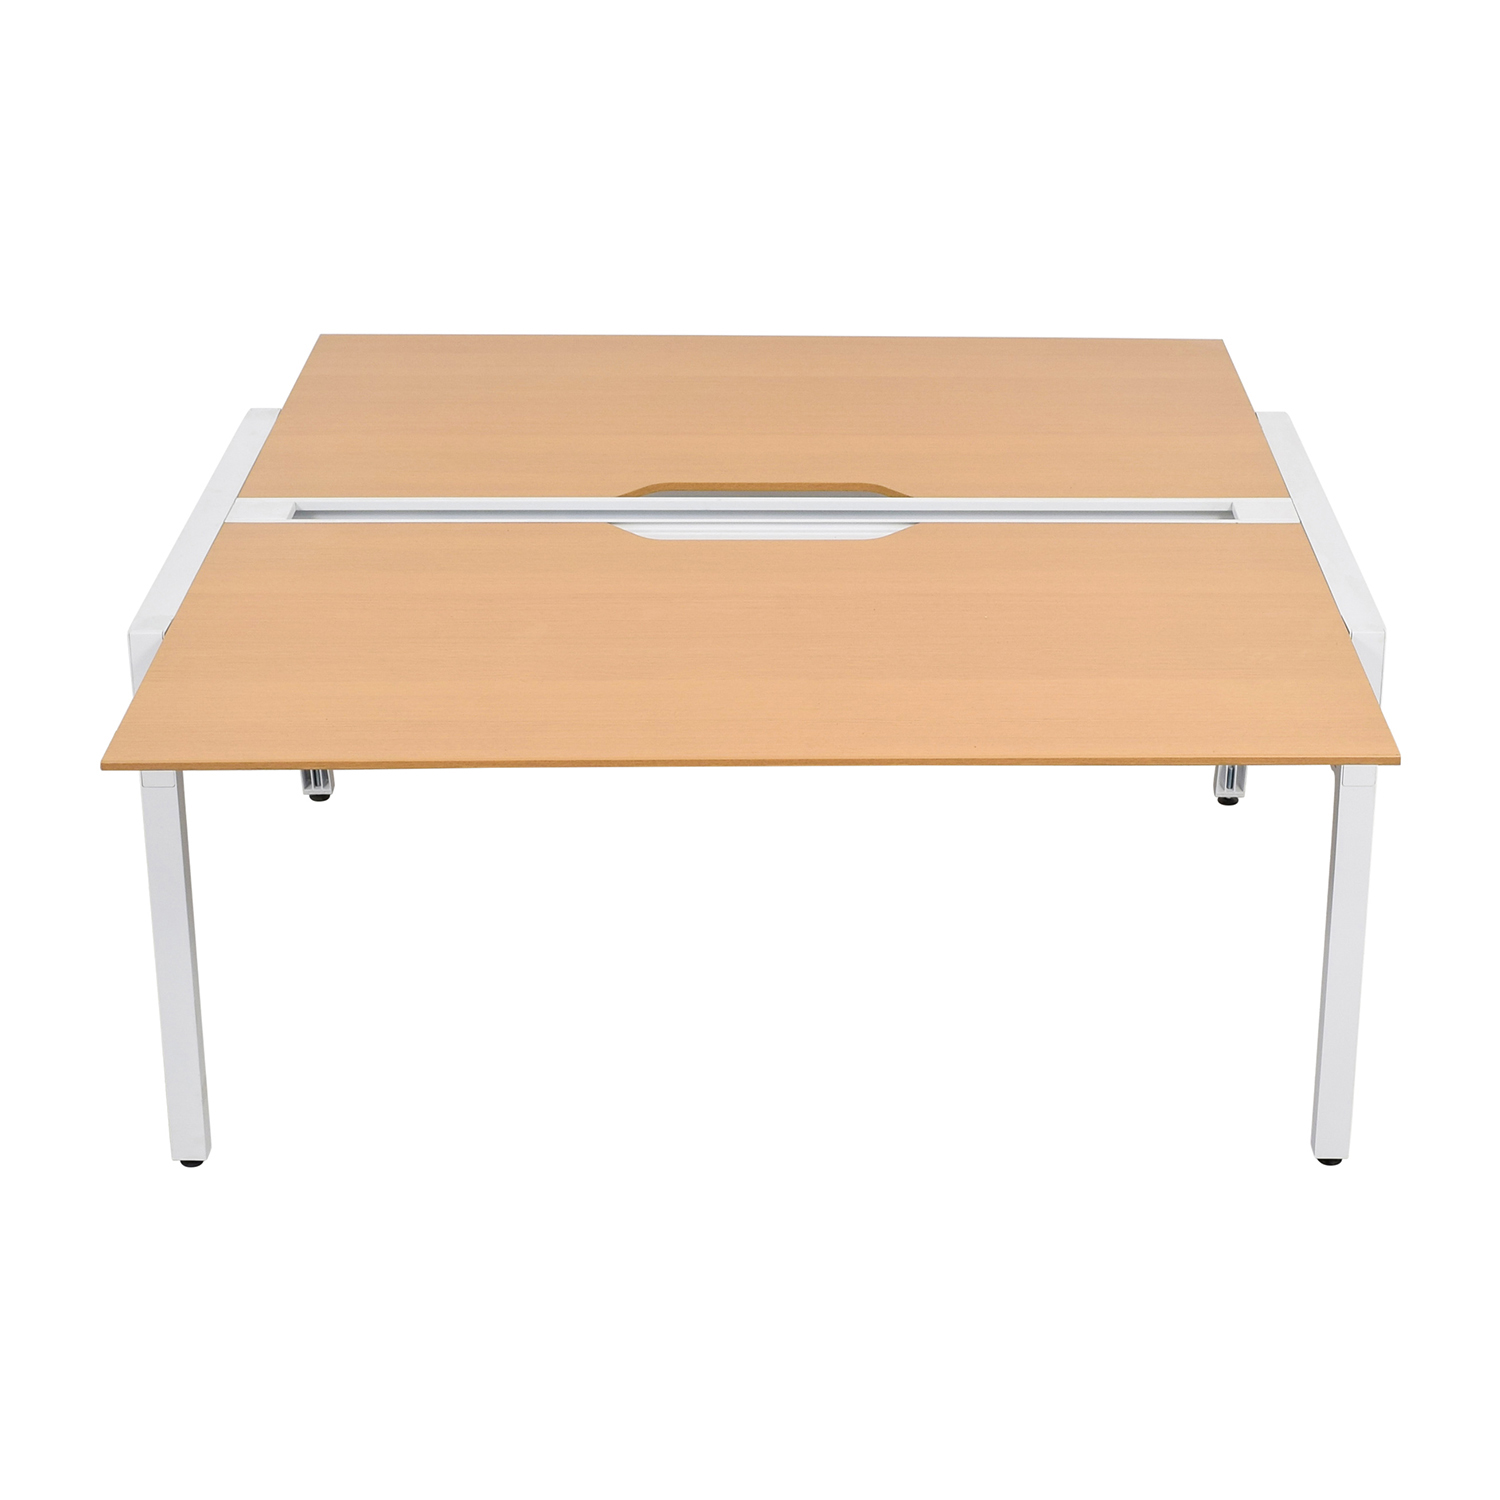 buy Poppin Steelcase Bivi Two Person Beech Wood Desk Poppin Steelcase